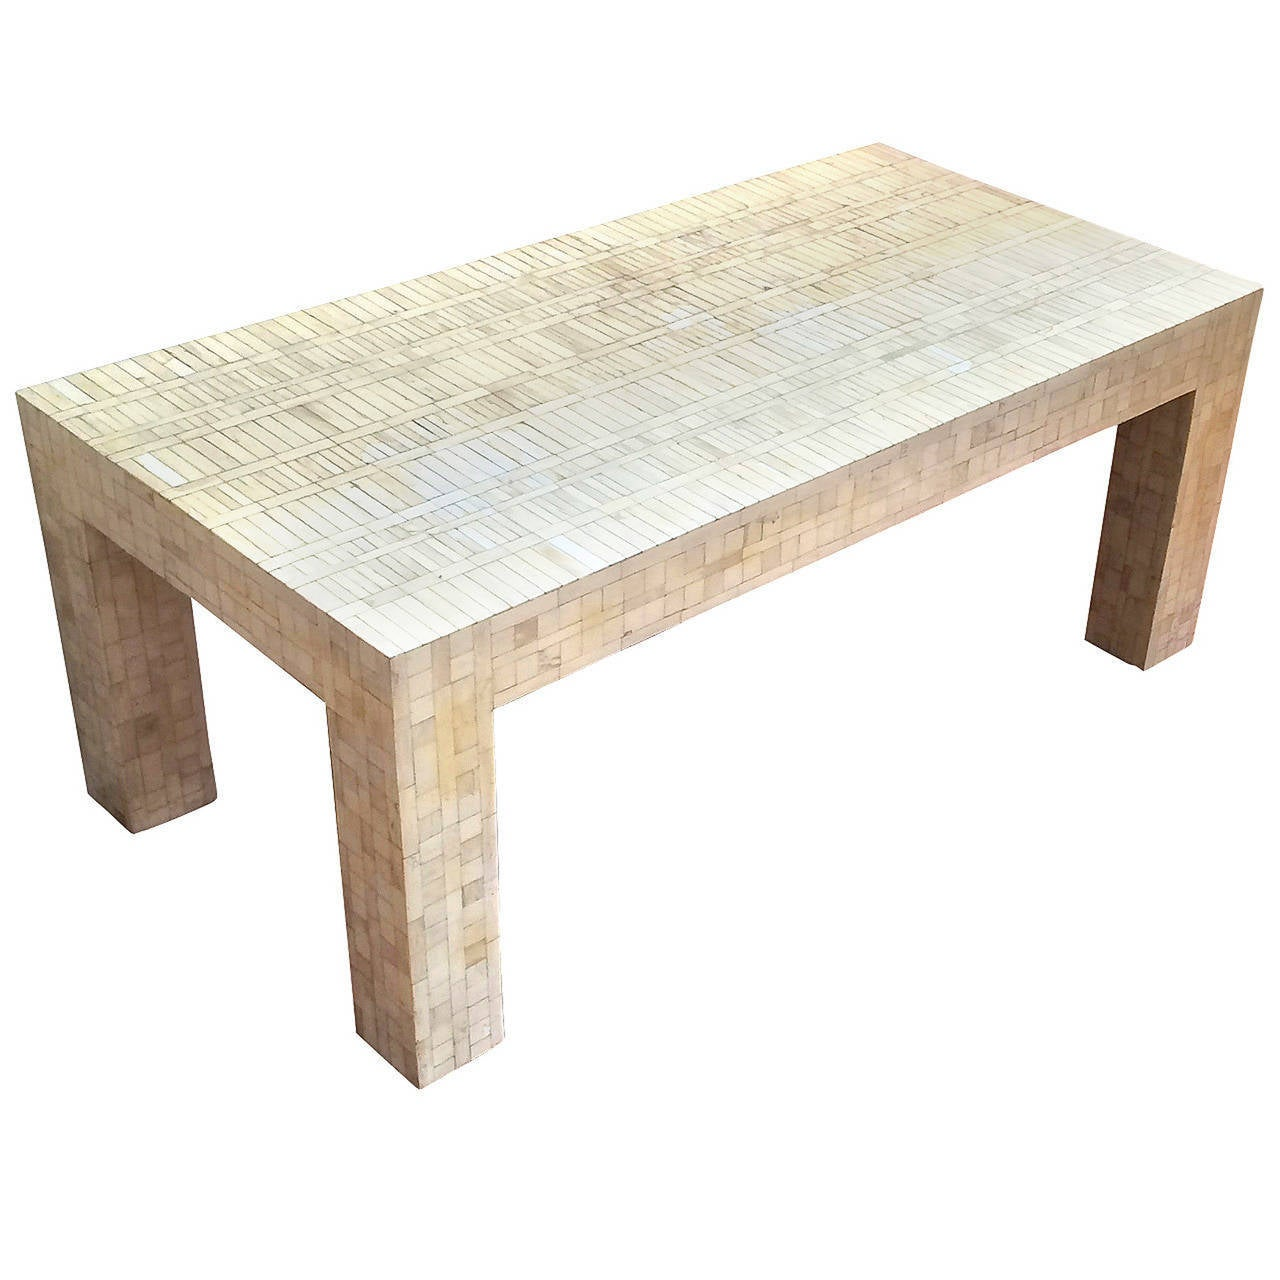 jansen bone inlay coffee table at 1stdibs. Black Bedroom Furniture Sets. Home Design Ideas